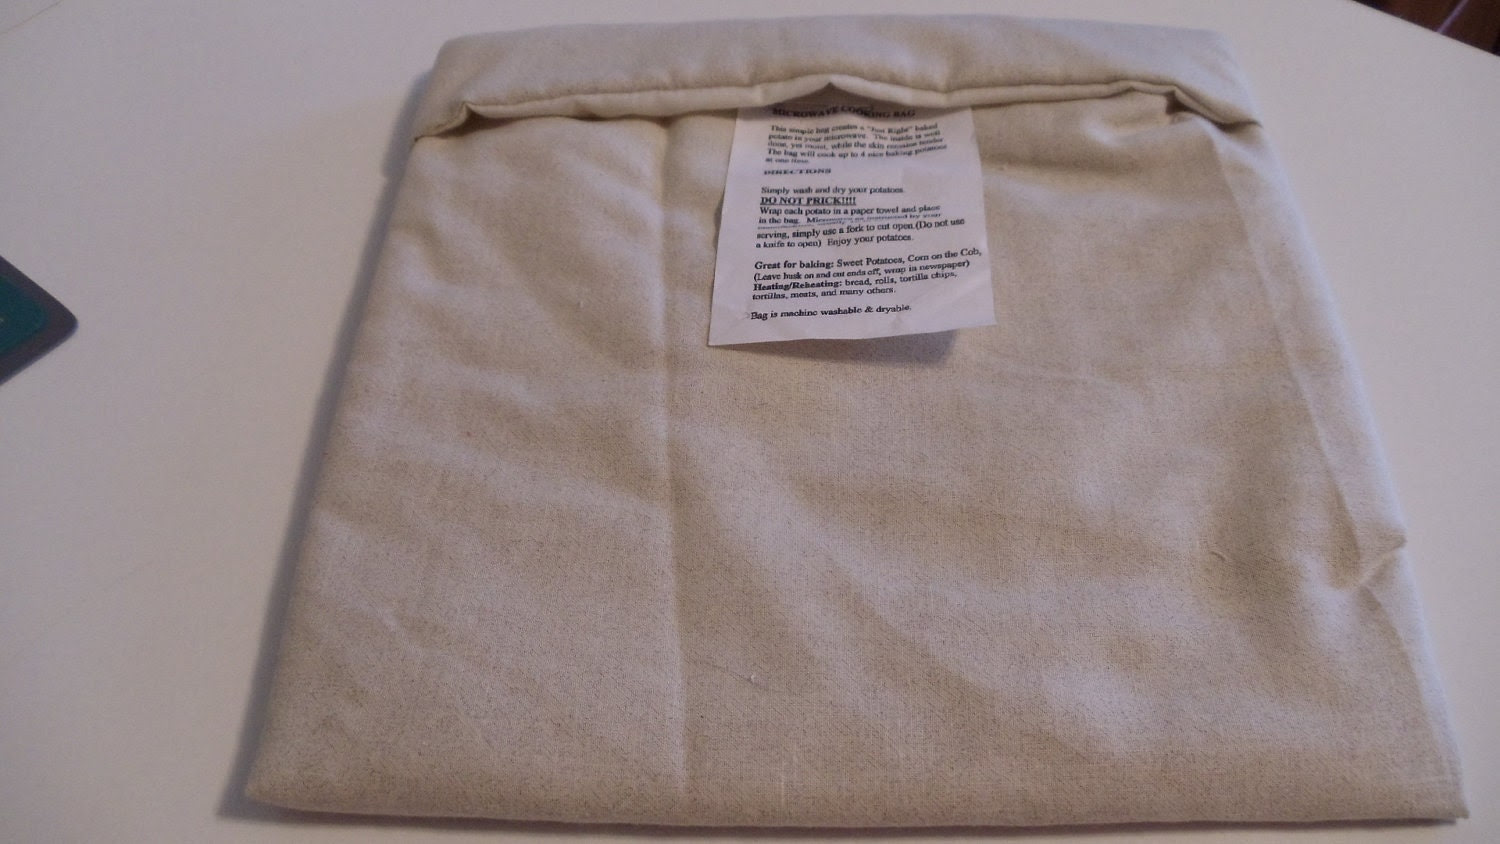 Microwave Baked Potato Cooking Bag - Beige